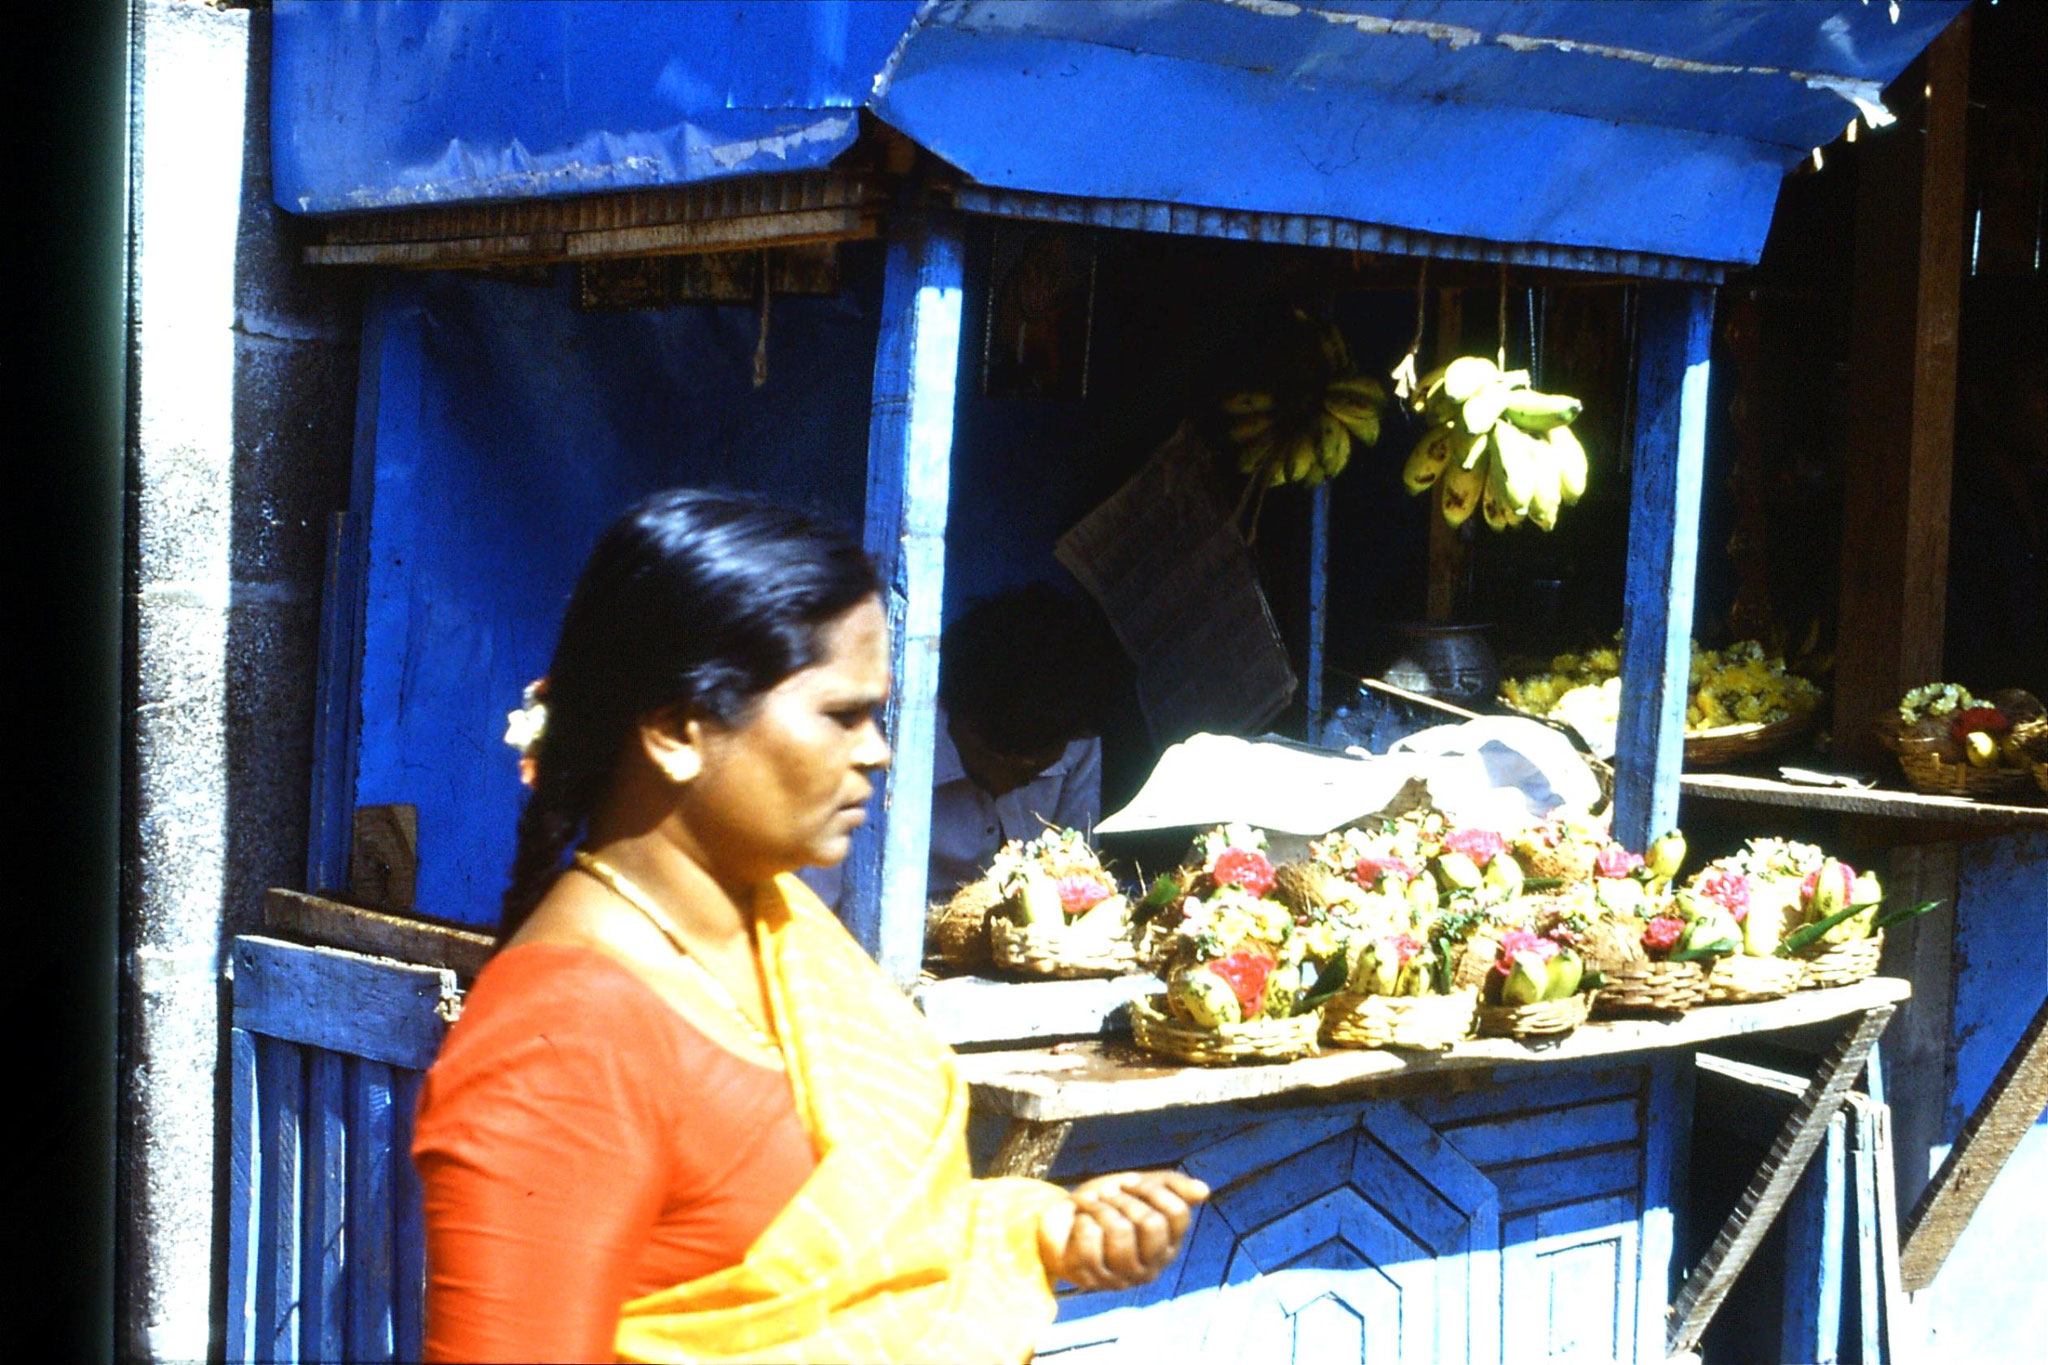 19/1/1990: 17: Kamakshi temple offerings stall